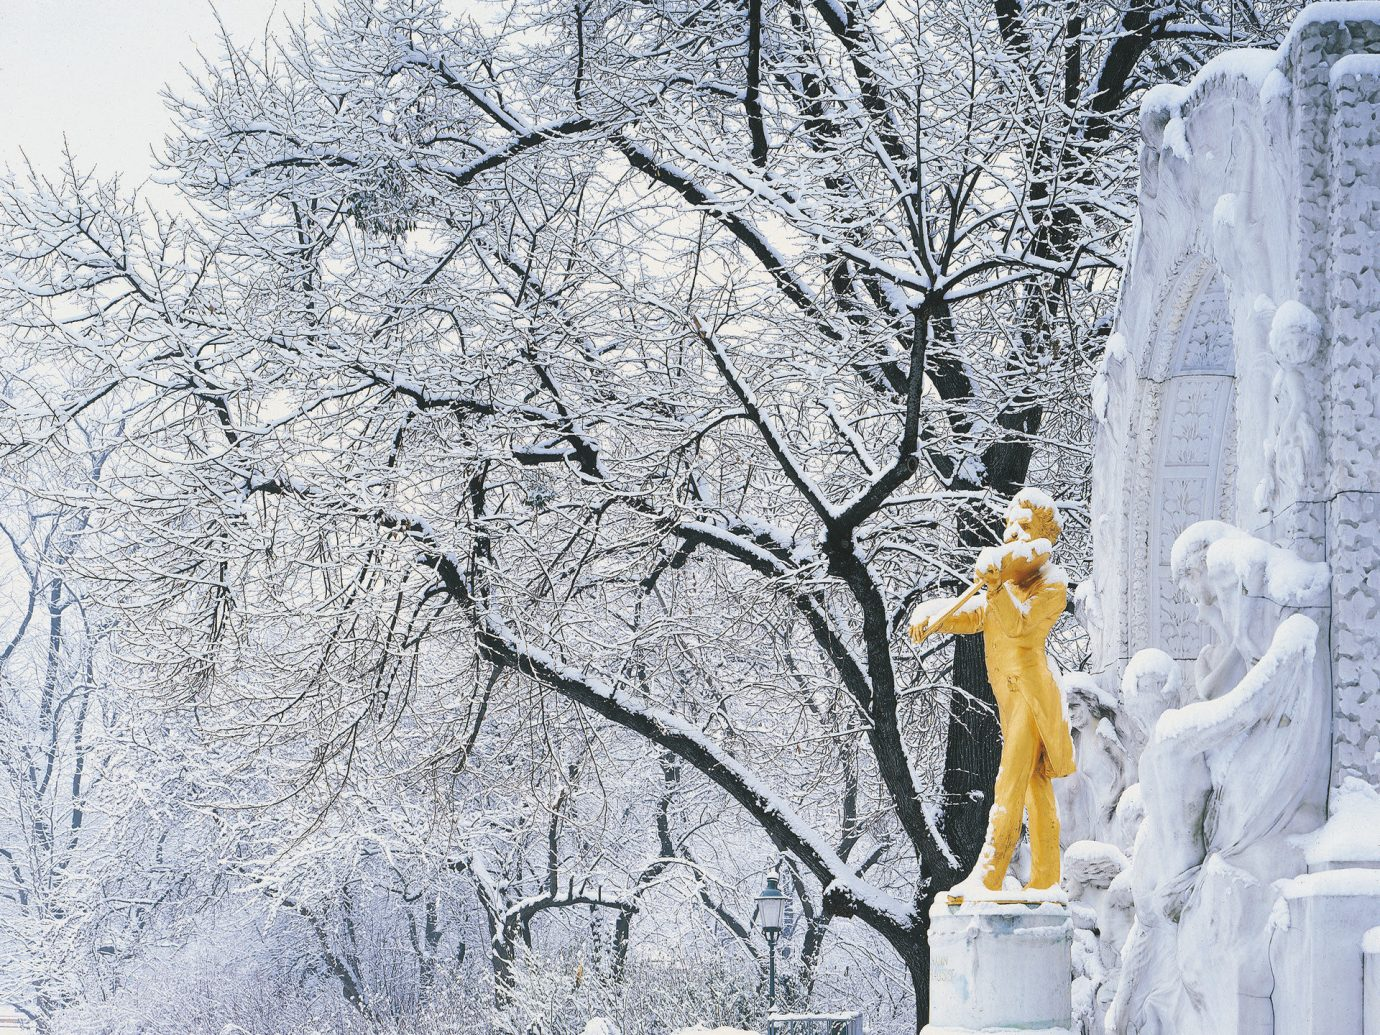 europe Outdoors park quaint snow statue trees Trip Ideas Winter tree outdoor weather freezing season ice branch frost winter storm spring blizzard flower